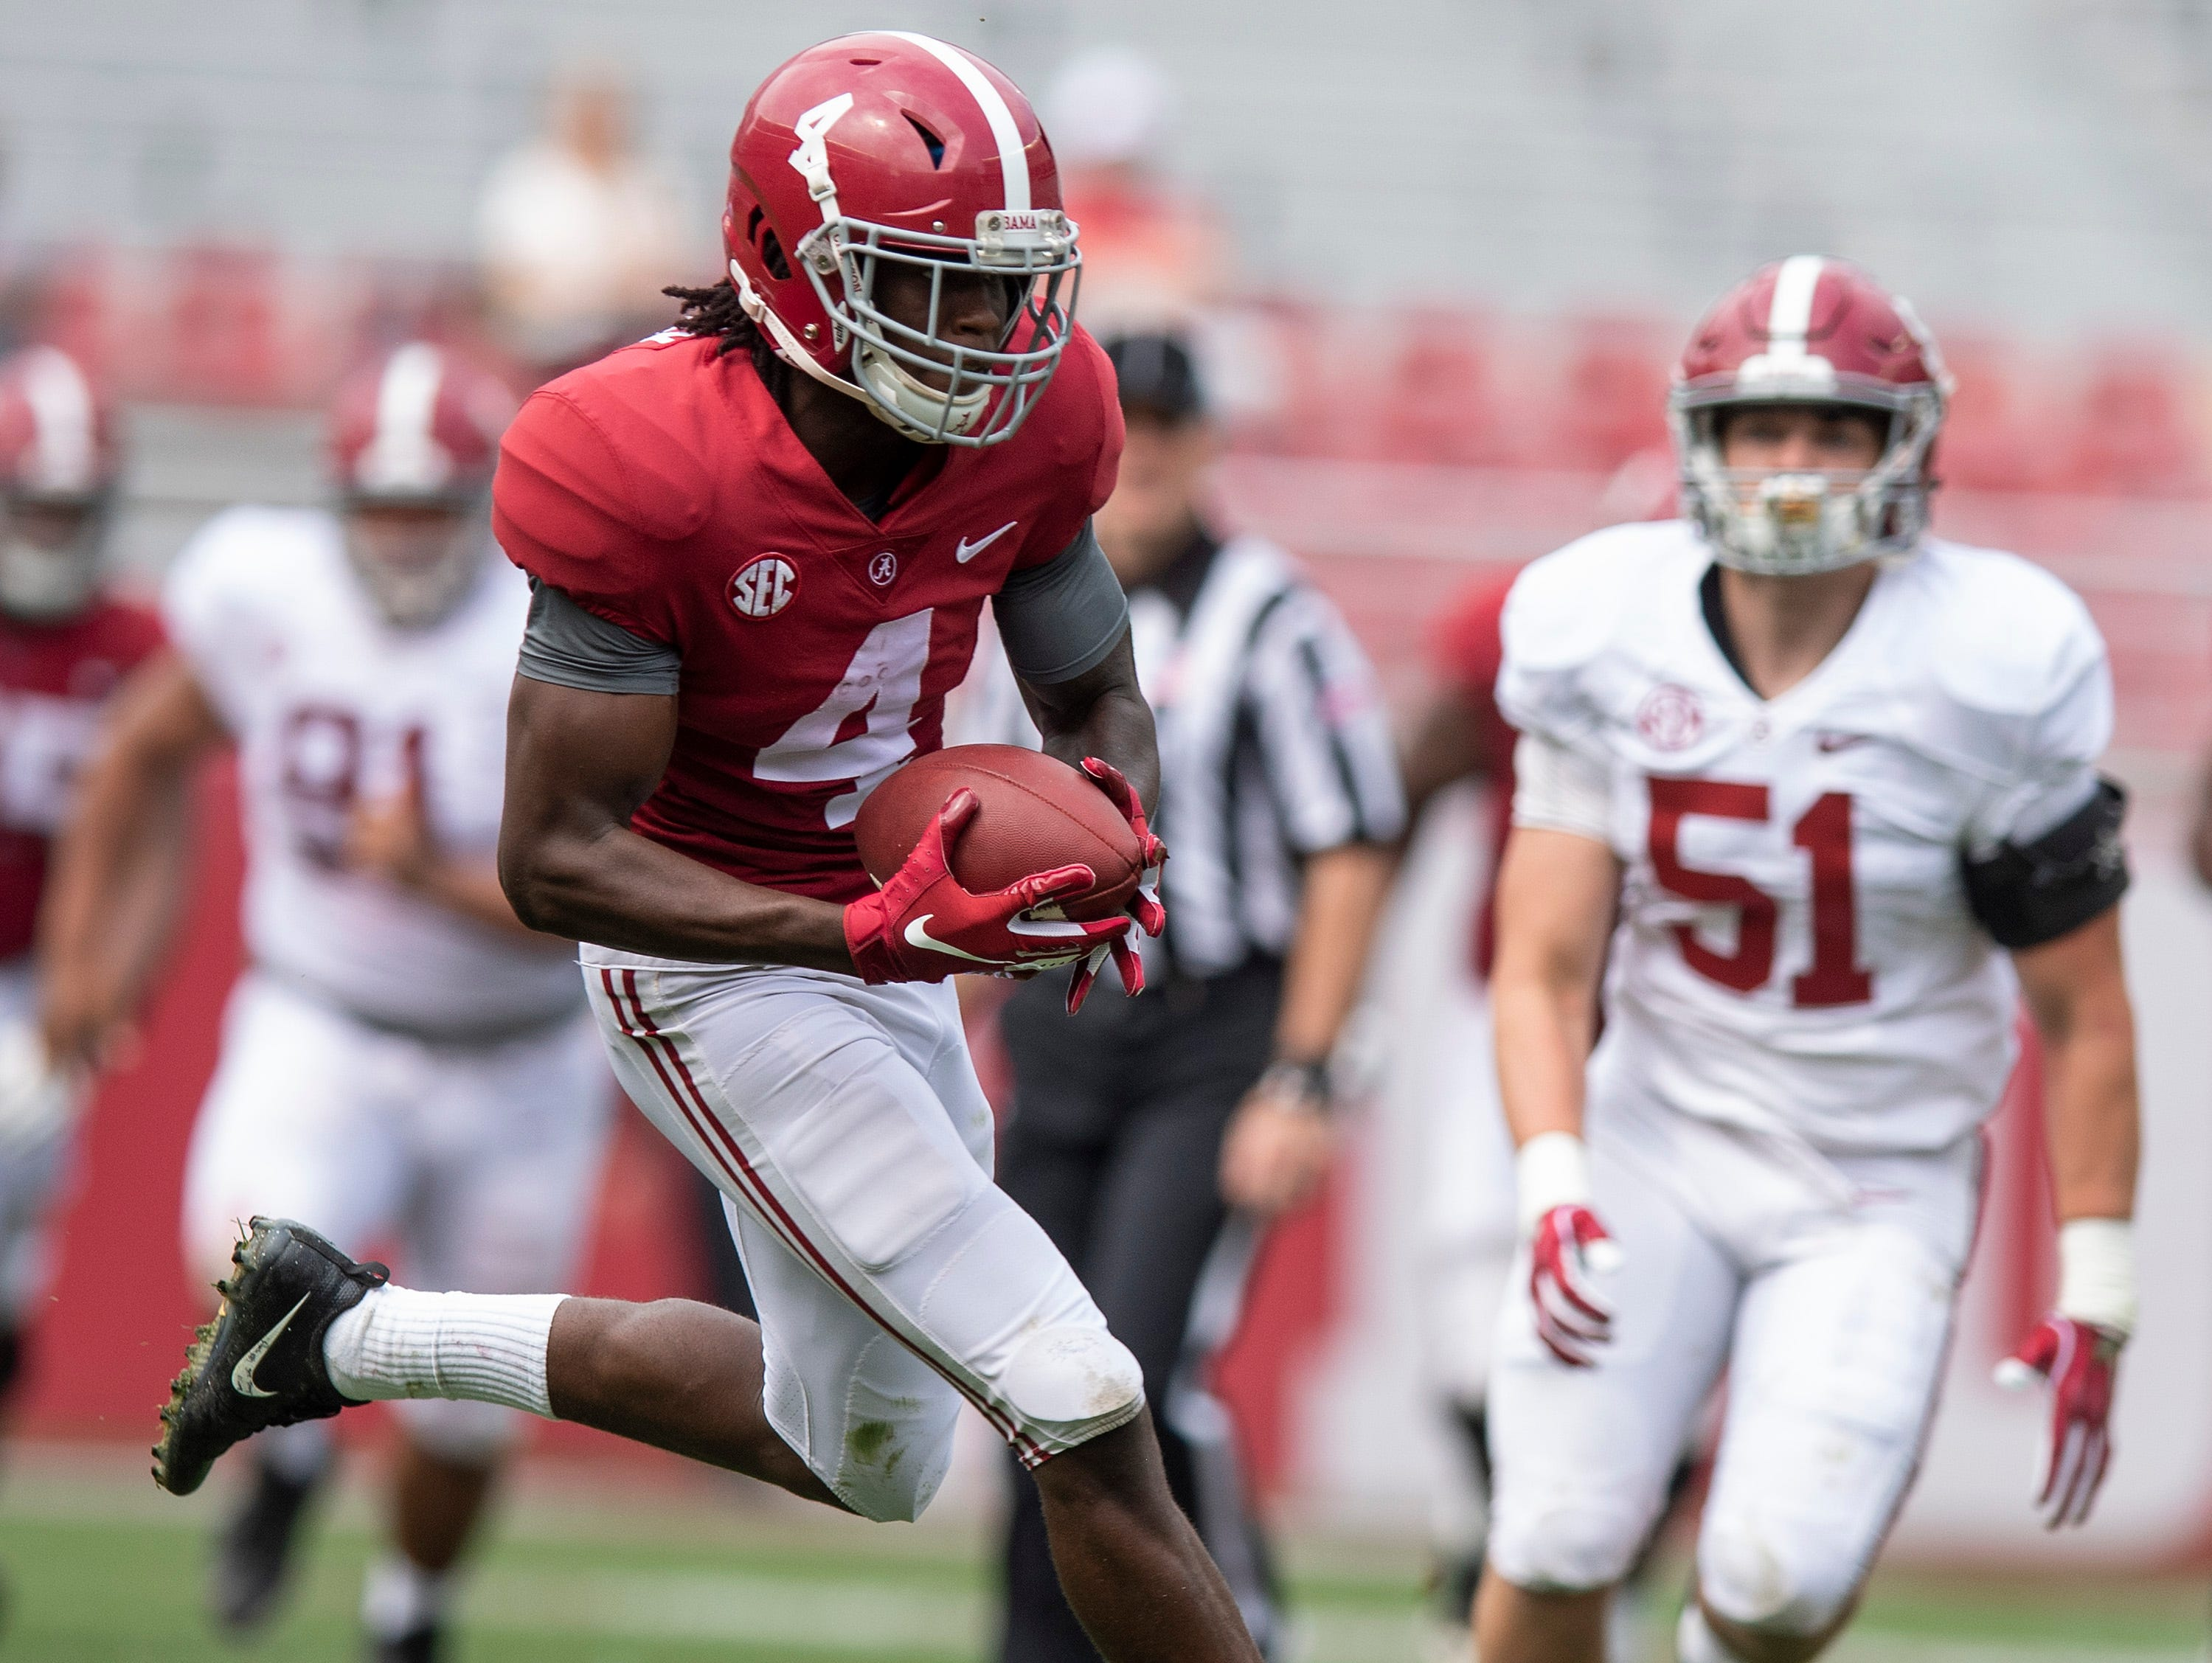 Alabama wide receiver Jerry Jeudy (4) catches a pass for a touchdown during second half action in the Alabama A-Day spring football scrimmage game at Bryant Denny Stadium in Tuscaloosa, Ala., on Saturday April 13, 2019.